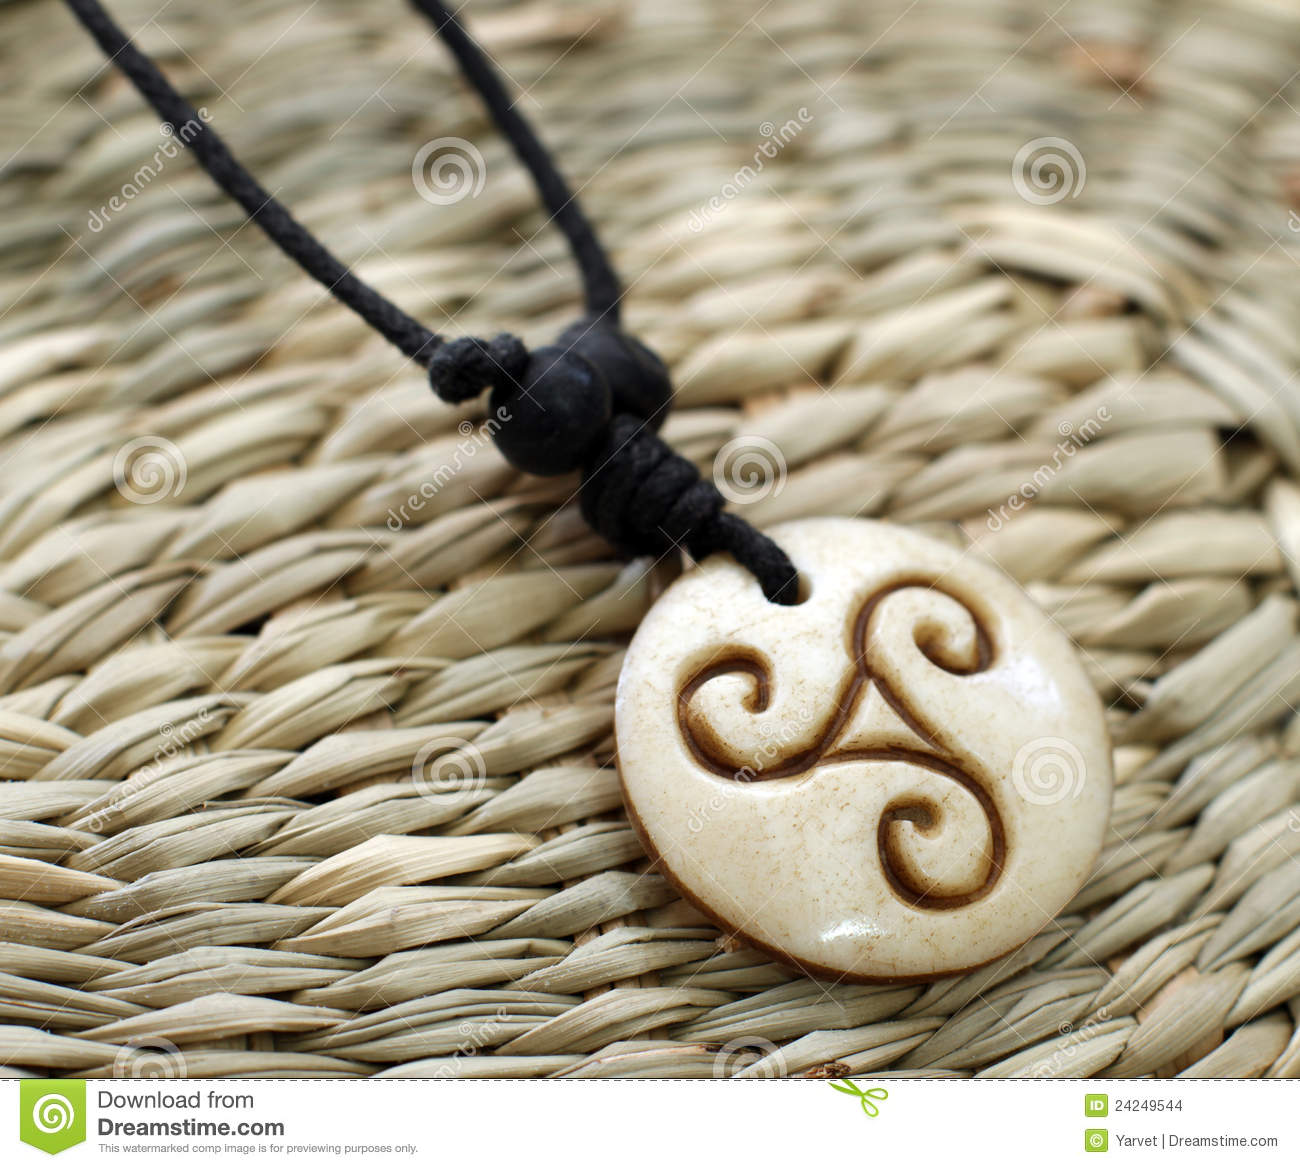 Voodoo amulet royalty free stock photos image 2718528 - Wooden Amulet Stock Images